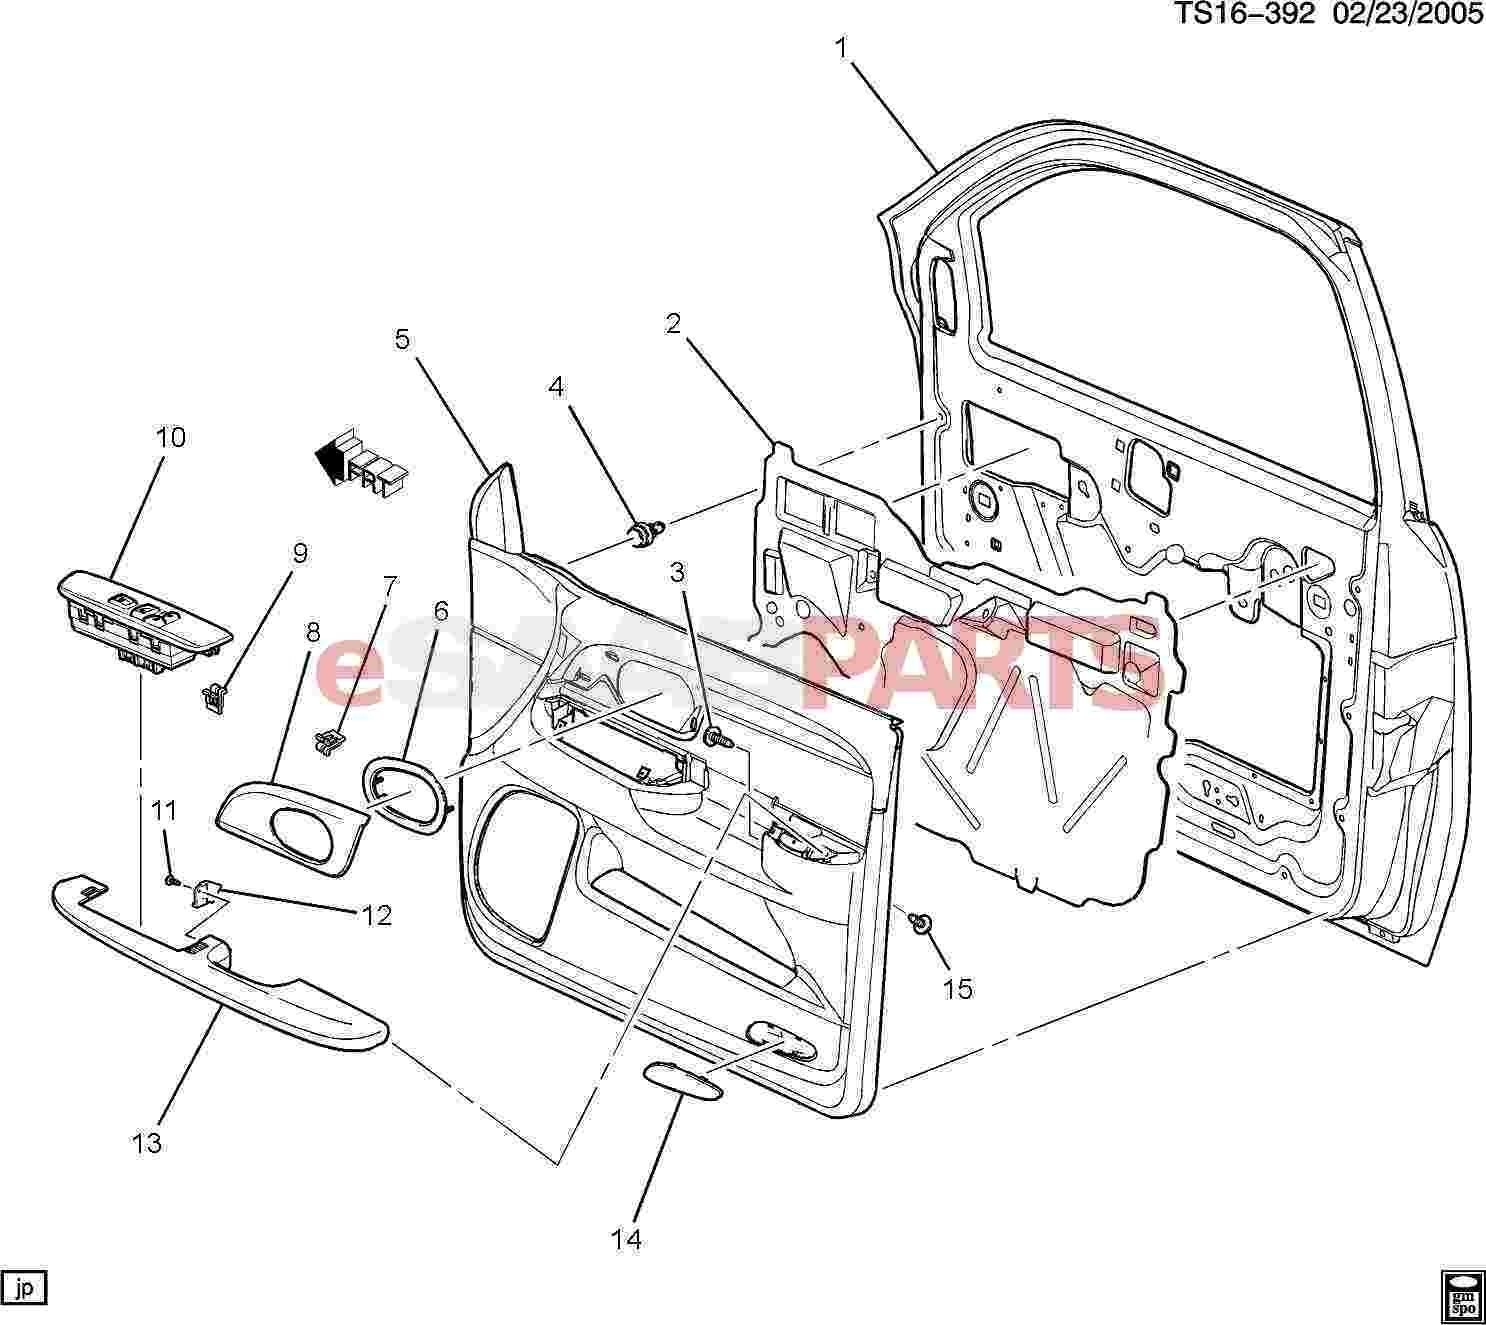 Suspension Parts Diagram Vehicle Suspension Diagram Diagram Car Best Car Parts and Diagrams Of Suspension Parts Diagram